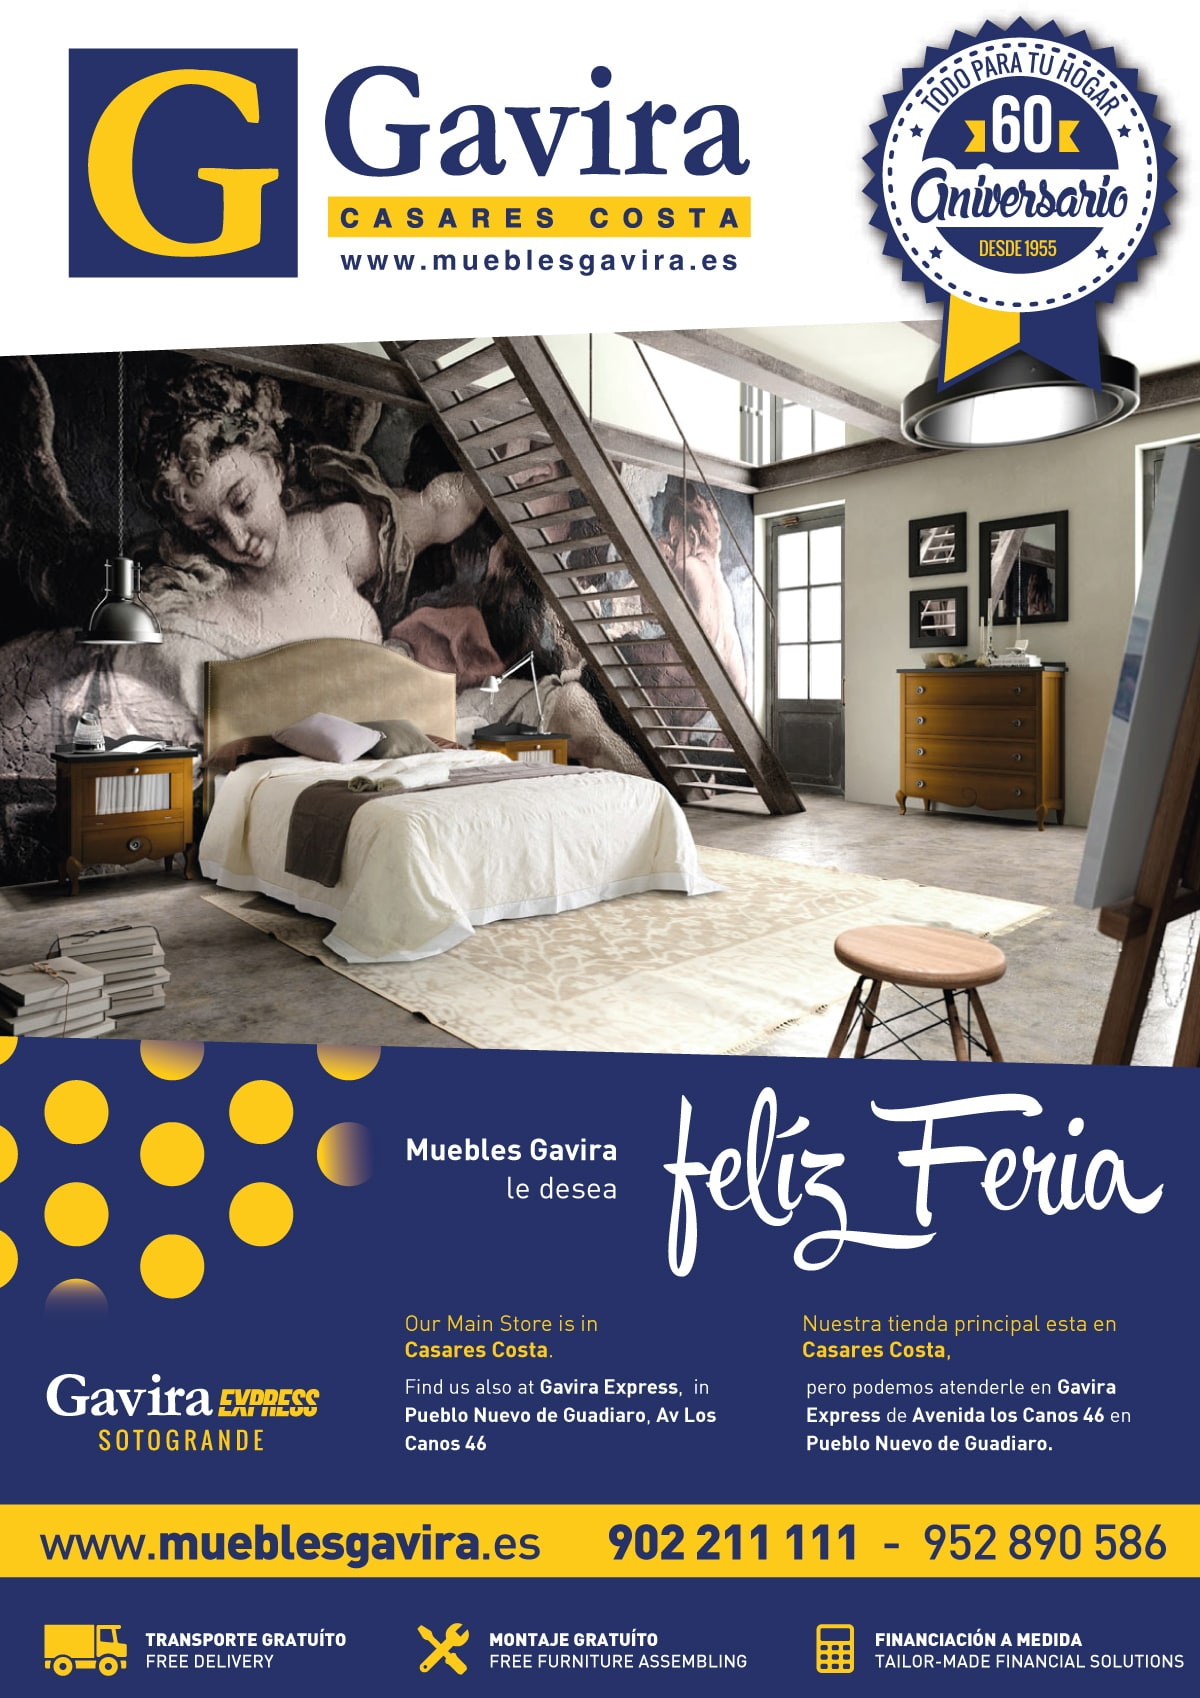 Muebles Y Uebles - Magazine Advertisement Design For Muebles Gavira Advertising And [mjhdah]https://lookaside.fbsbx.com/lookaside/crawler/media/?media_id=1501932496766127